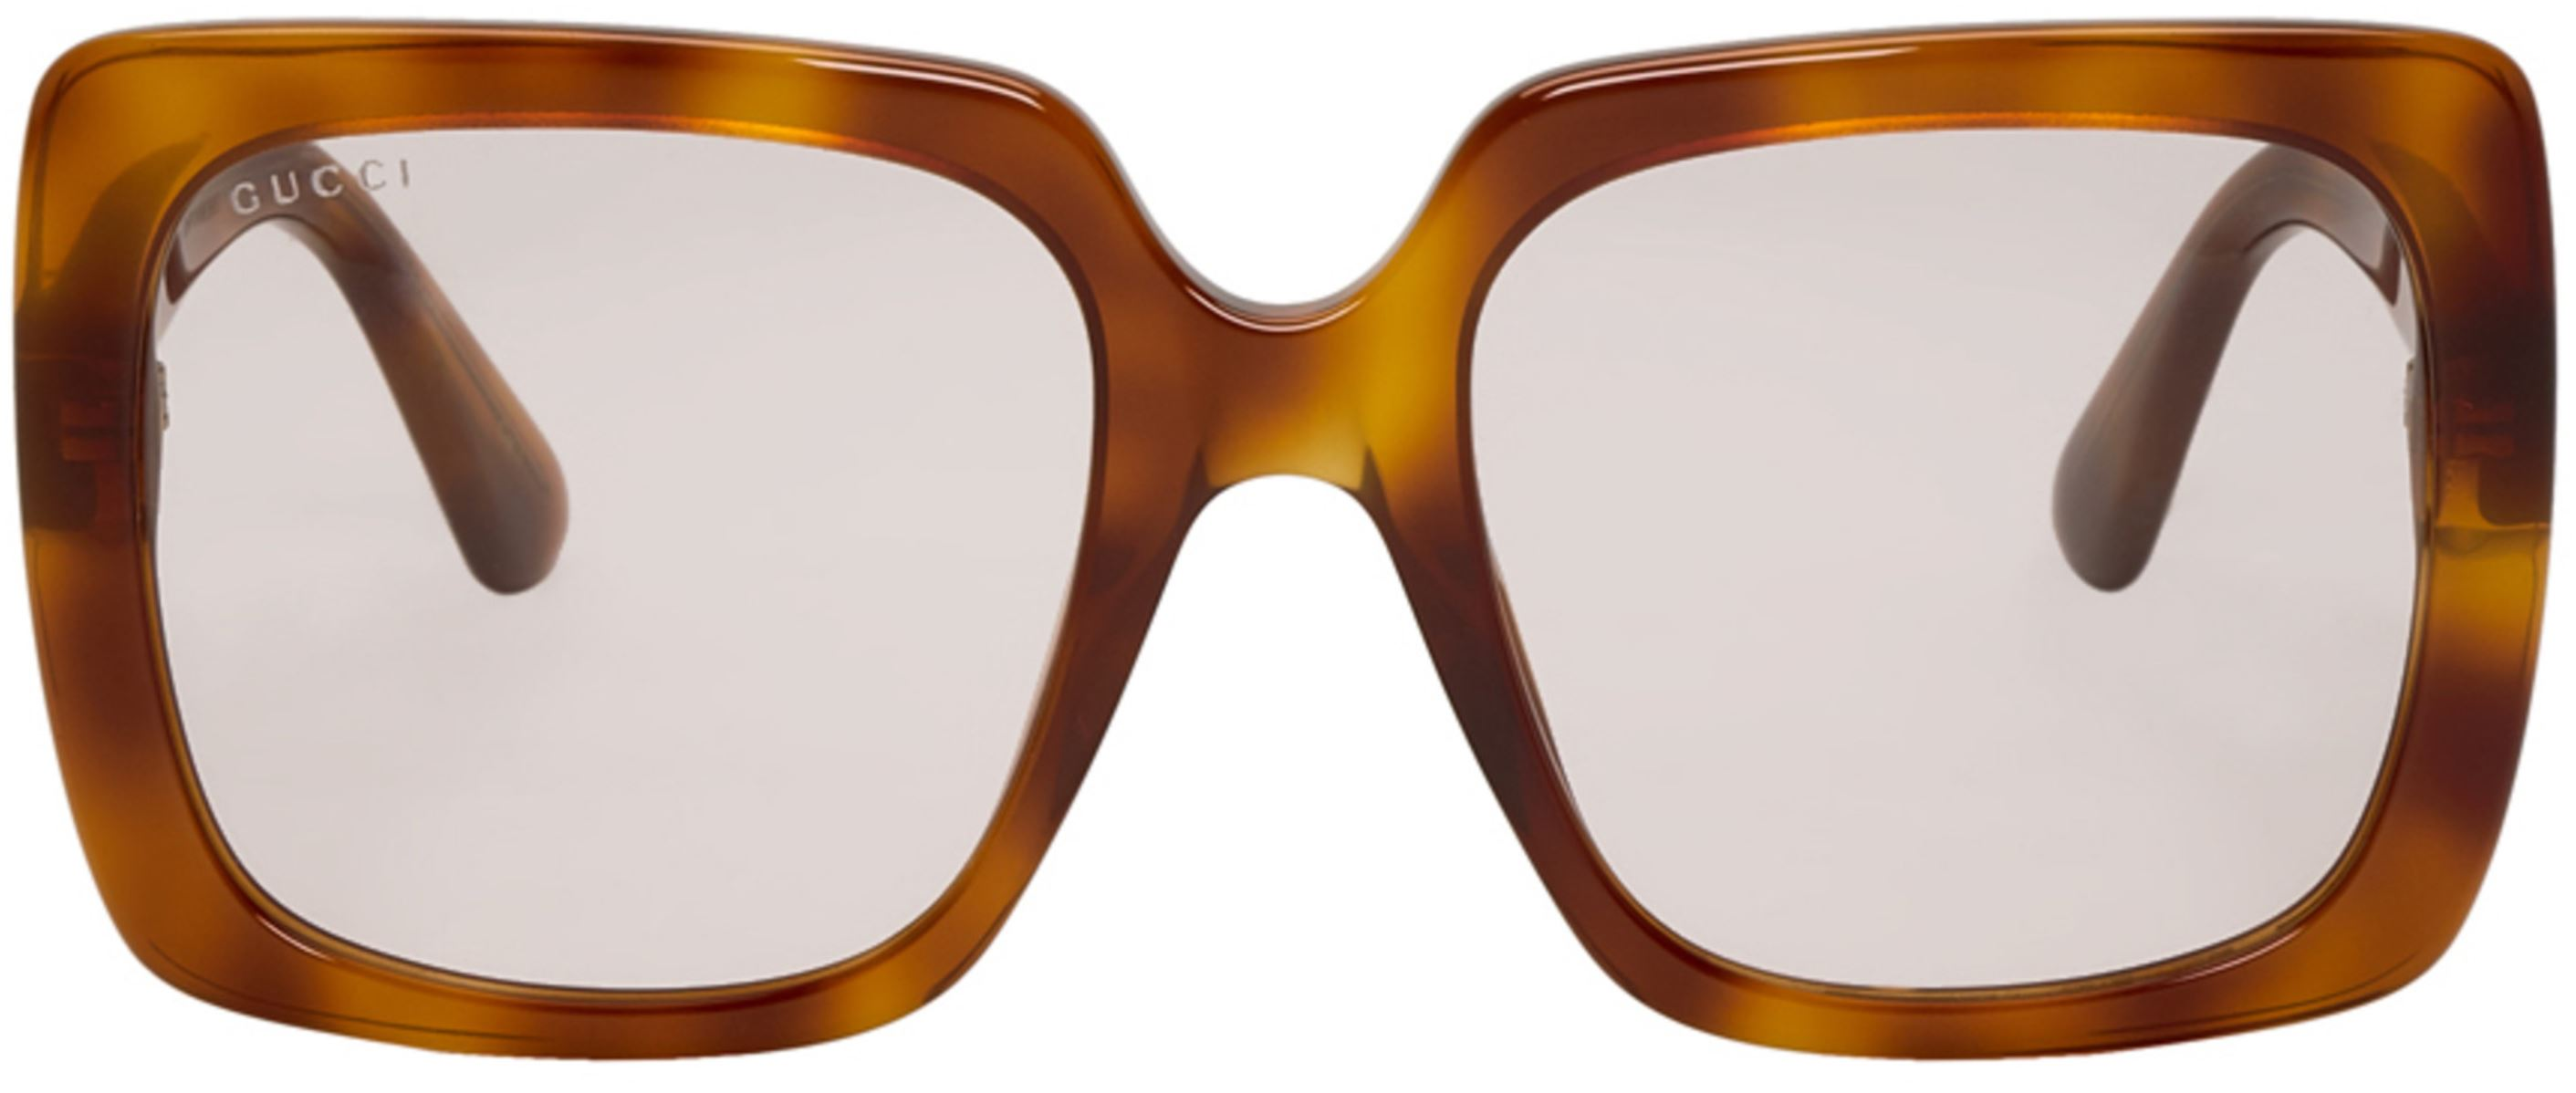 Gucci Shades from ssense.com